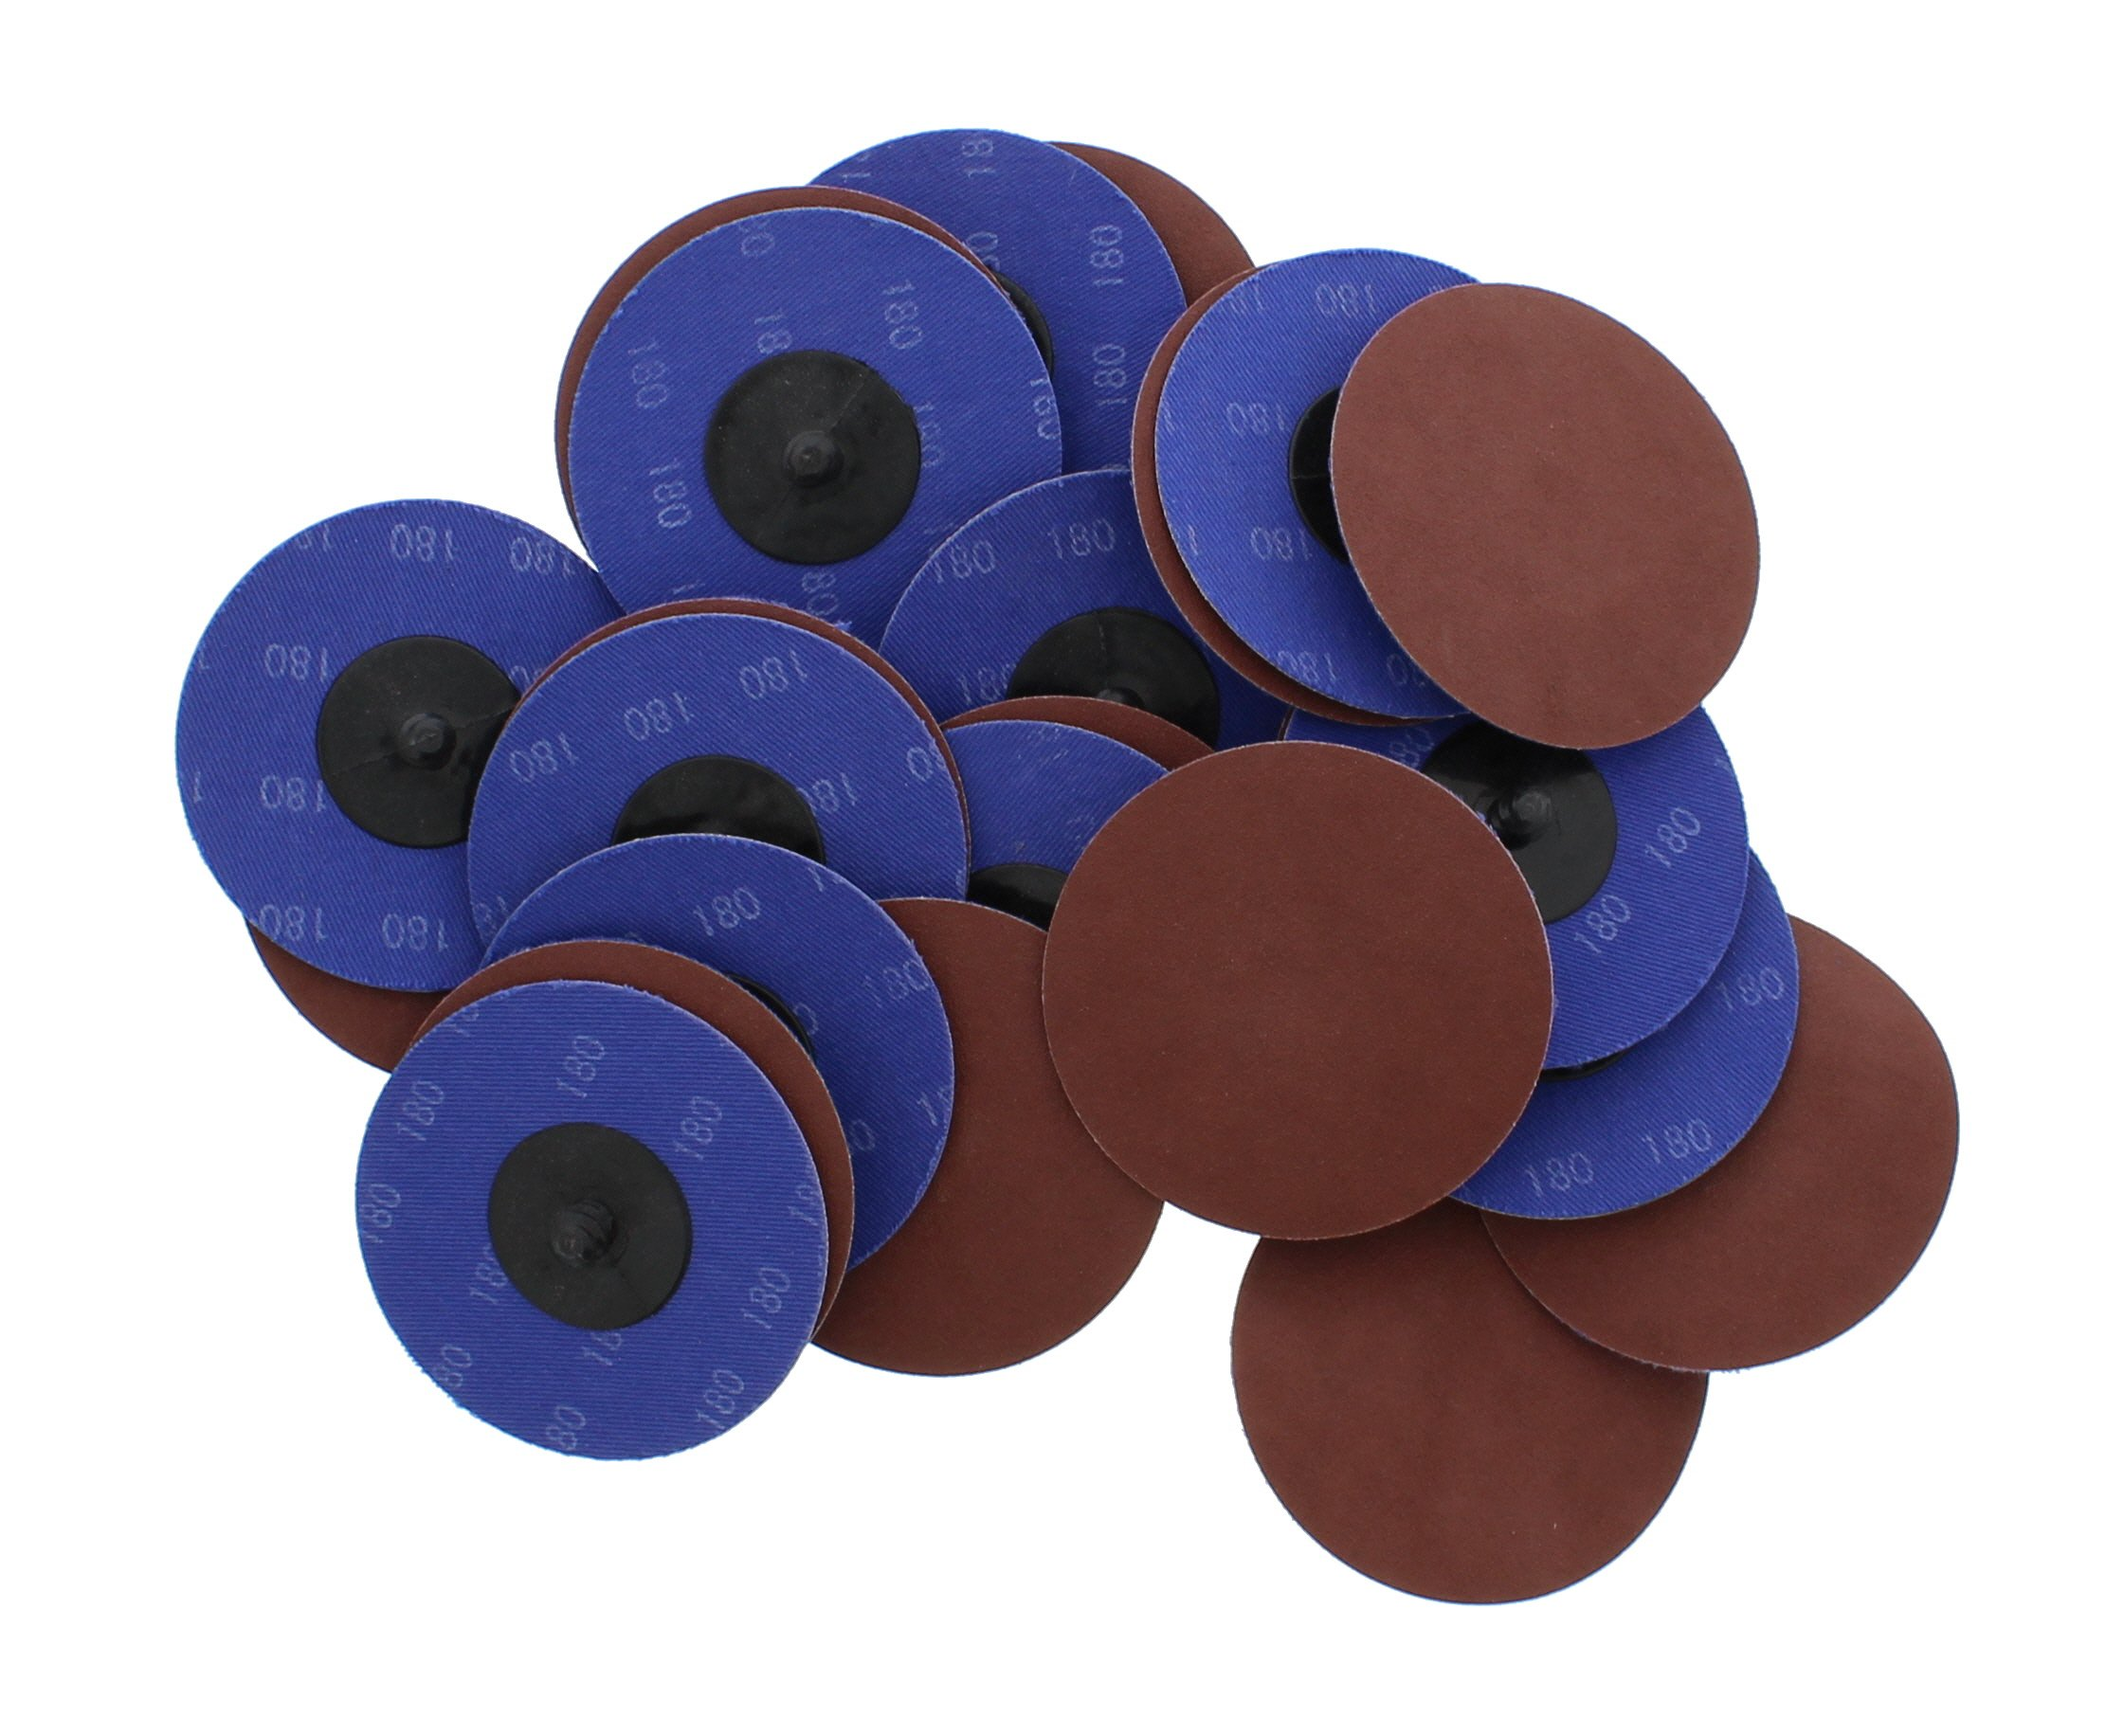 """ABN Aluminum Oxide Sanding Discs 25-Pack, 3"""" Inch, 180 Grit - Metal Sanding Wheels for Surface Prep and Finishing Work"""